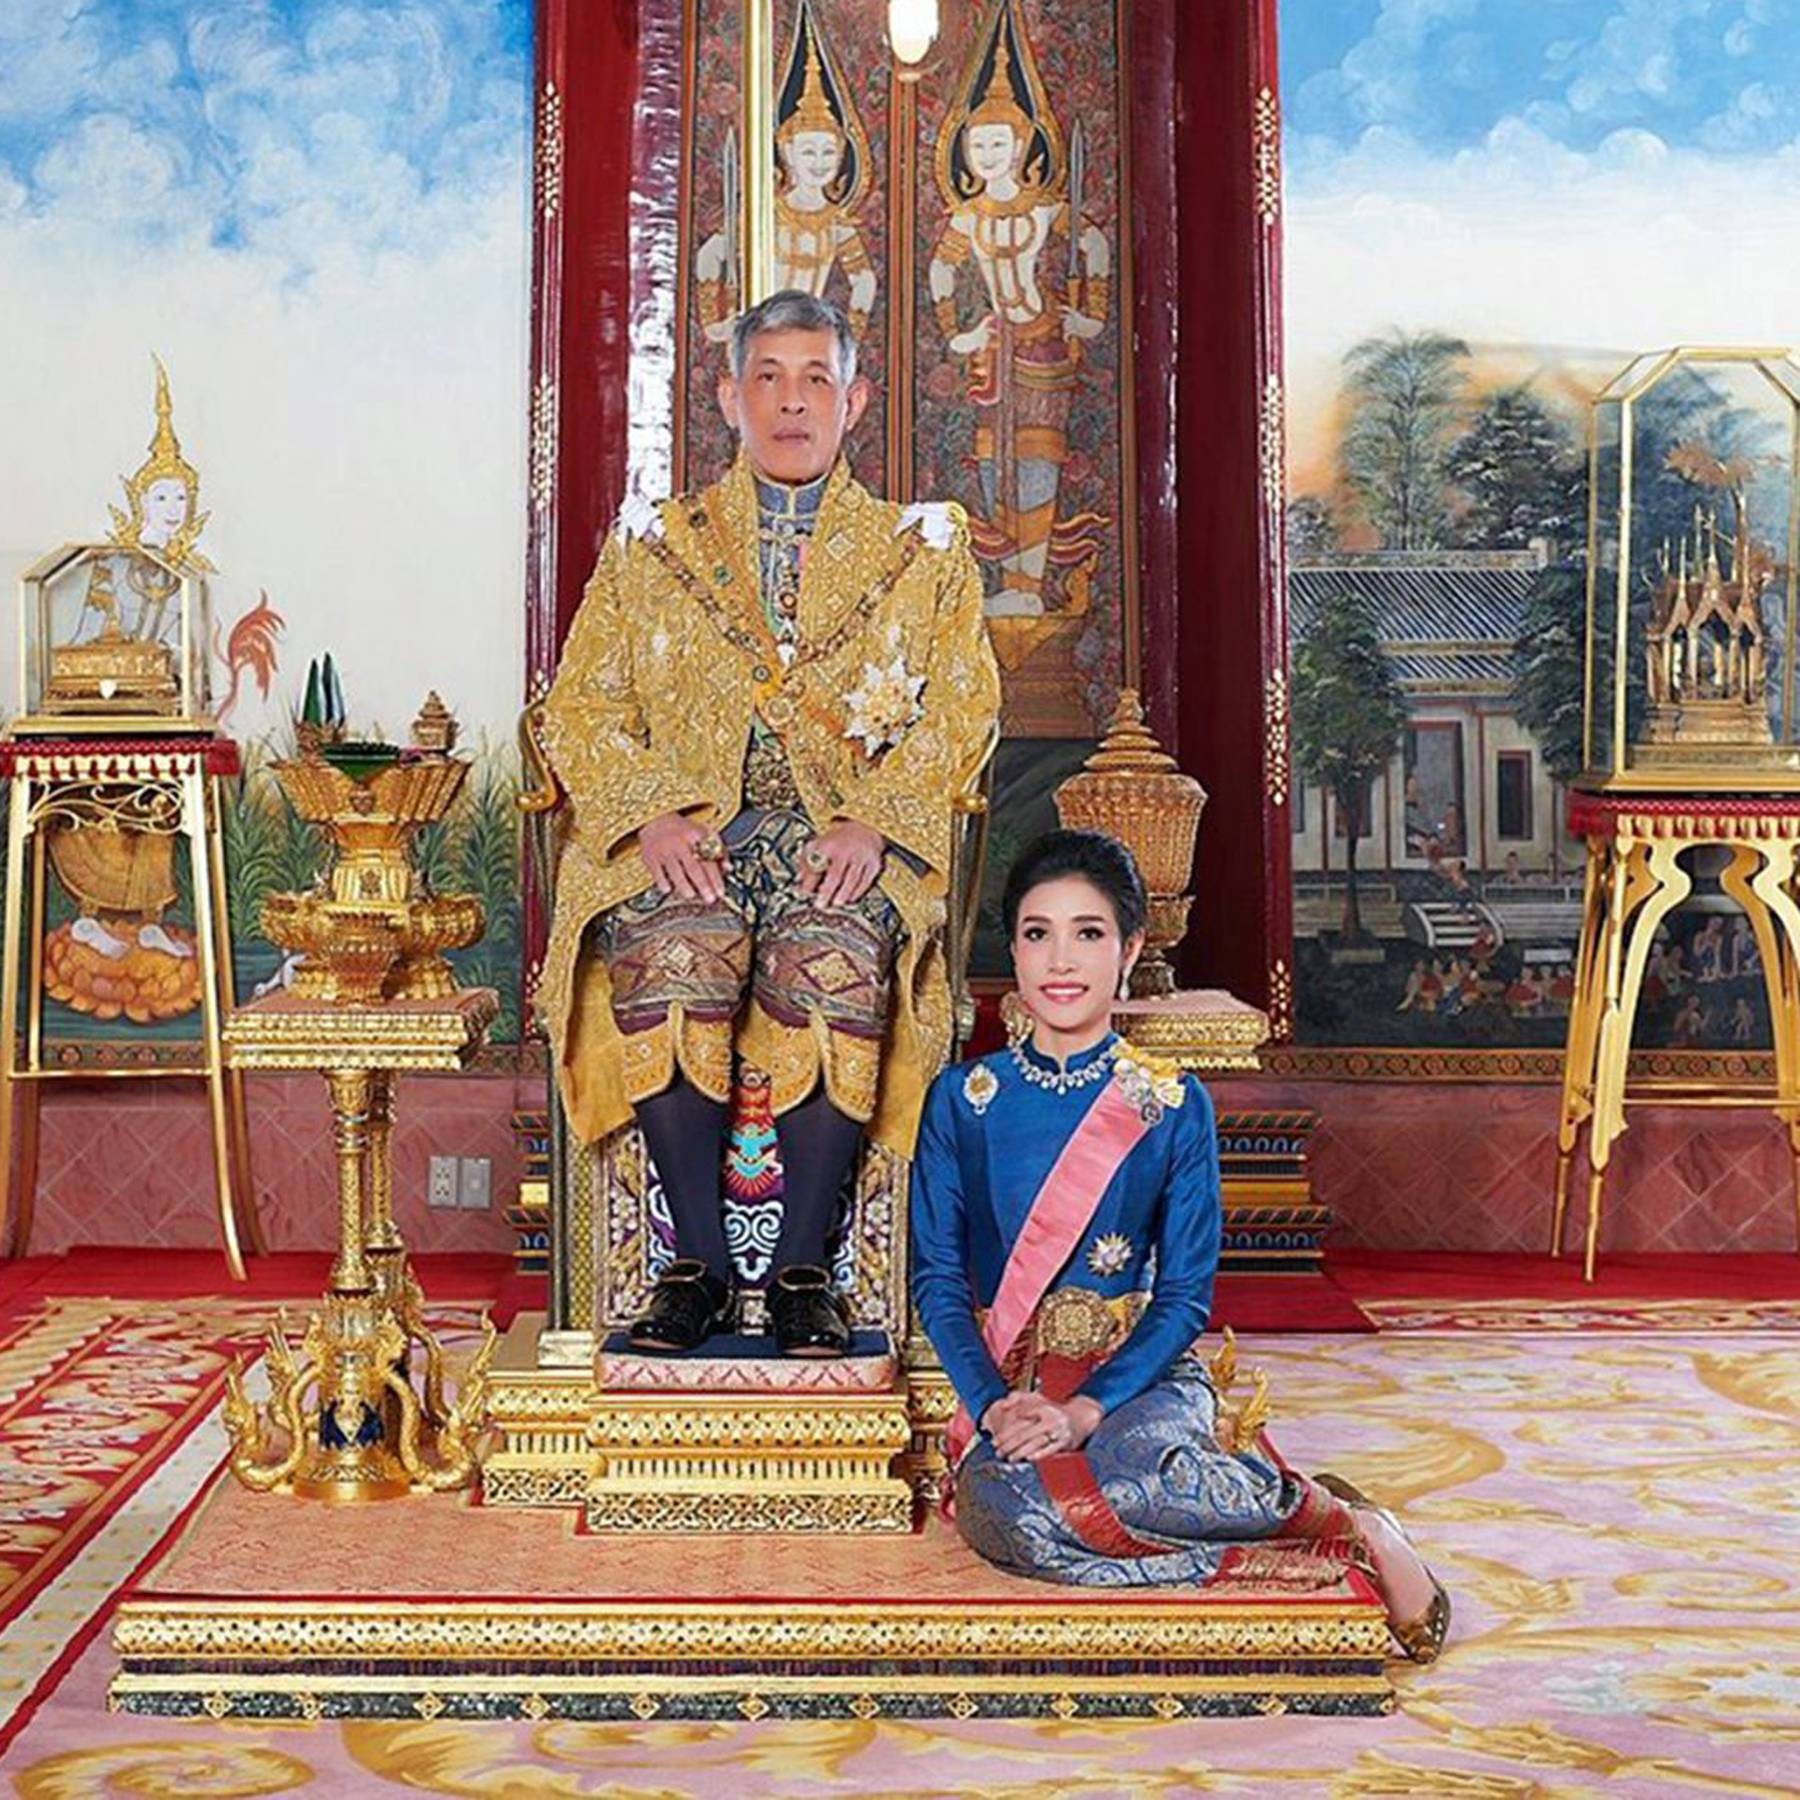 Newly appointed Thai Royal Consort dismissed in disgrace